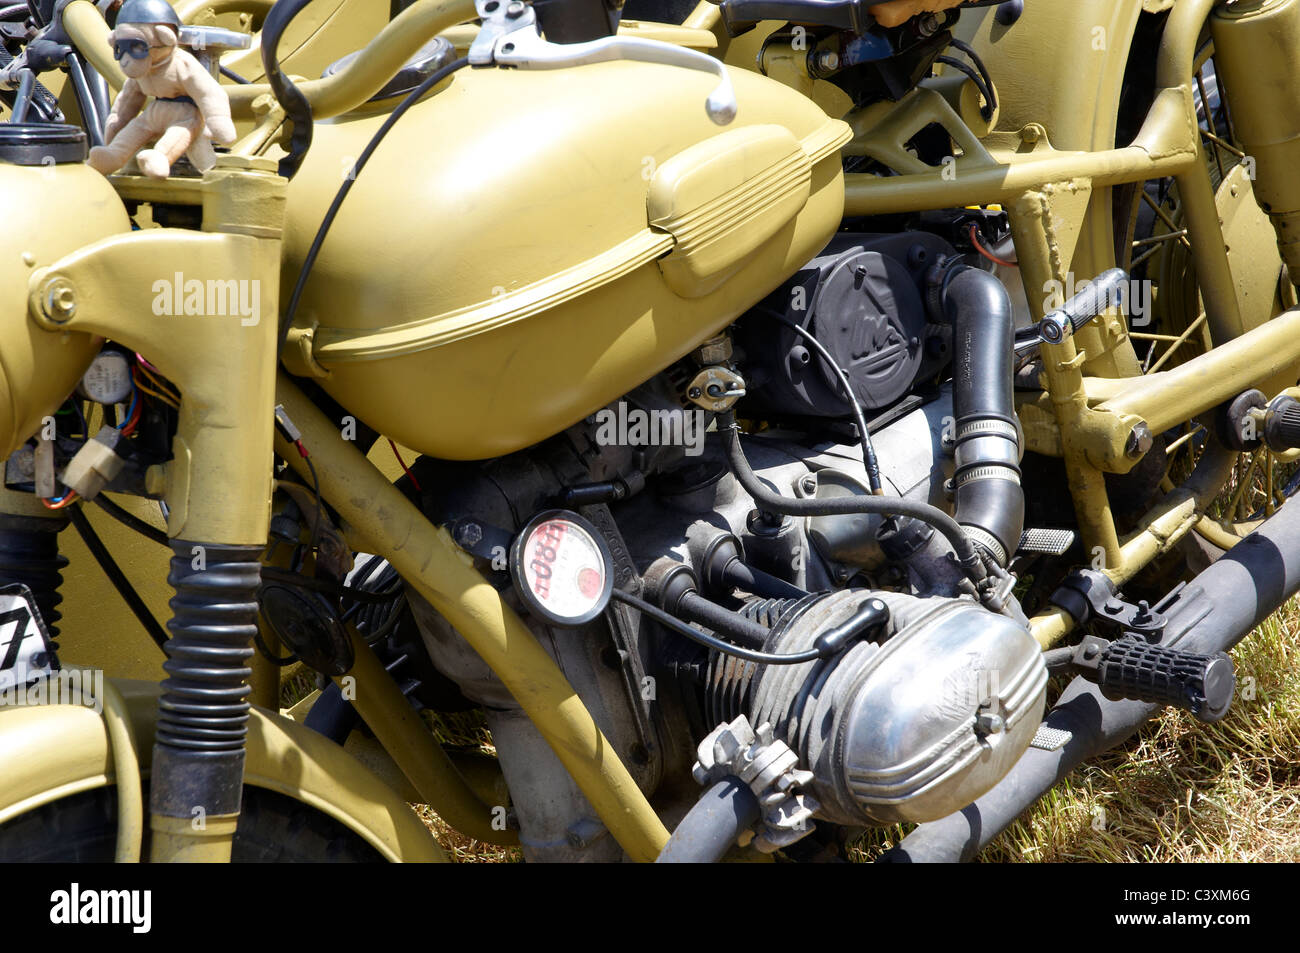 German Army (Wehrmacht) BMW R75 motorcycle and sidecar as used by the Afrika Corps. - Stock Image